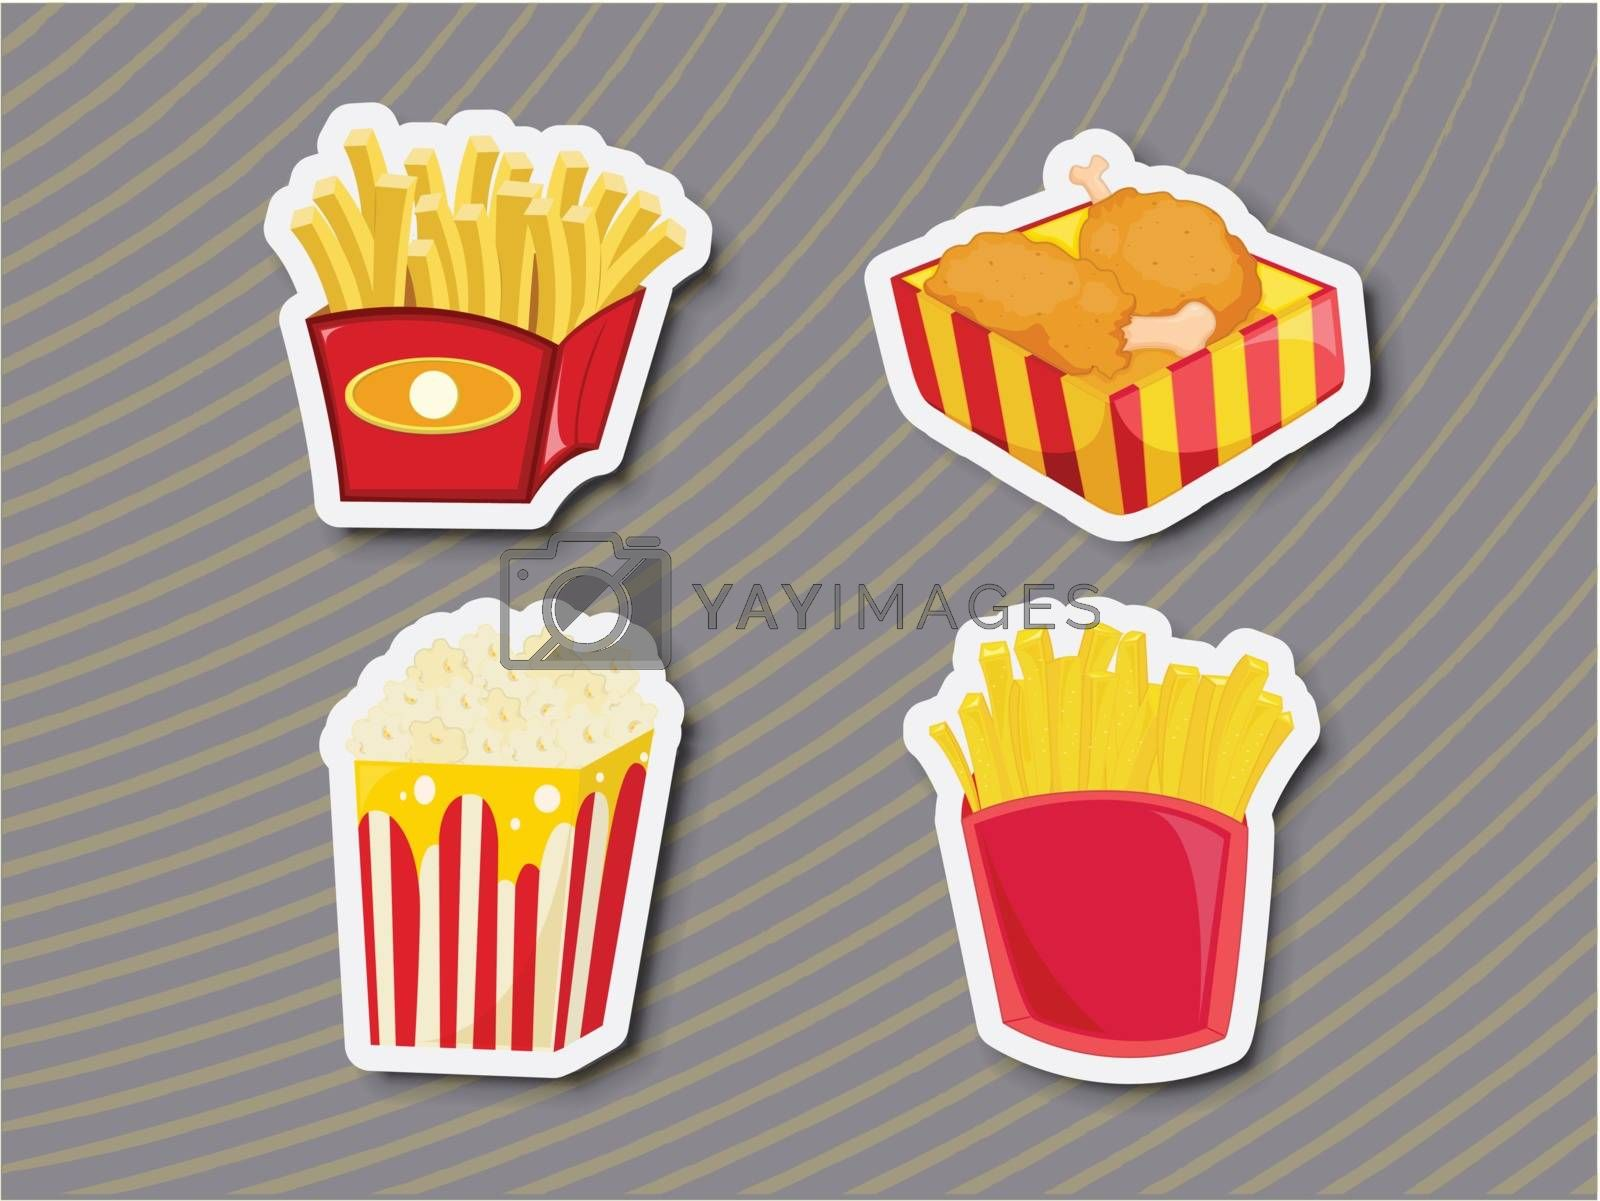 Illustration of unhealthy food as stickers